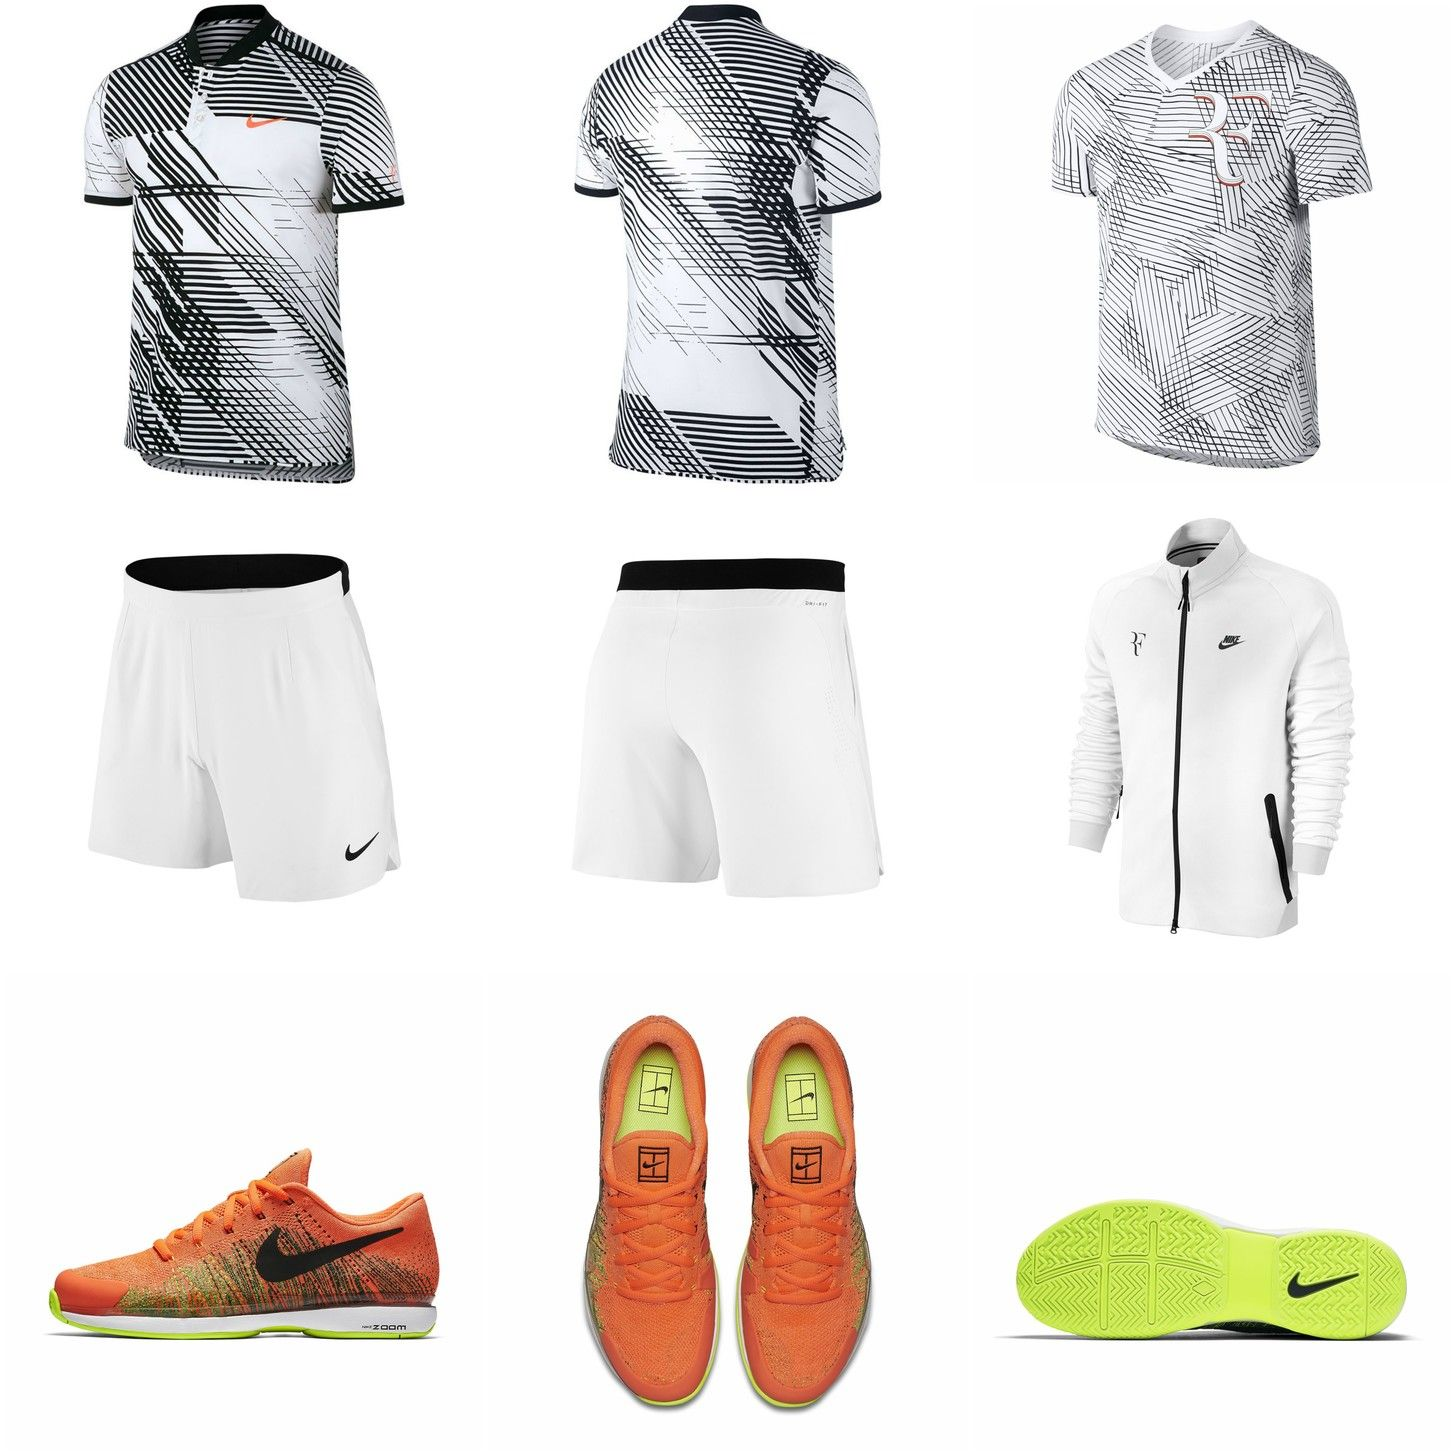 Roger Federer S Outfit For The Australian Open 2017 Tennis Fashion Roger Federer Outfits 2017